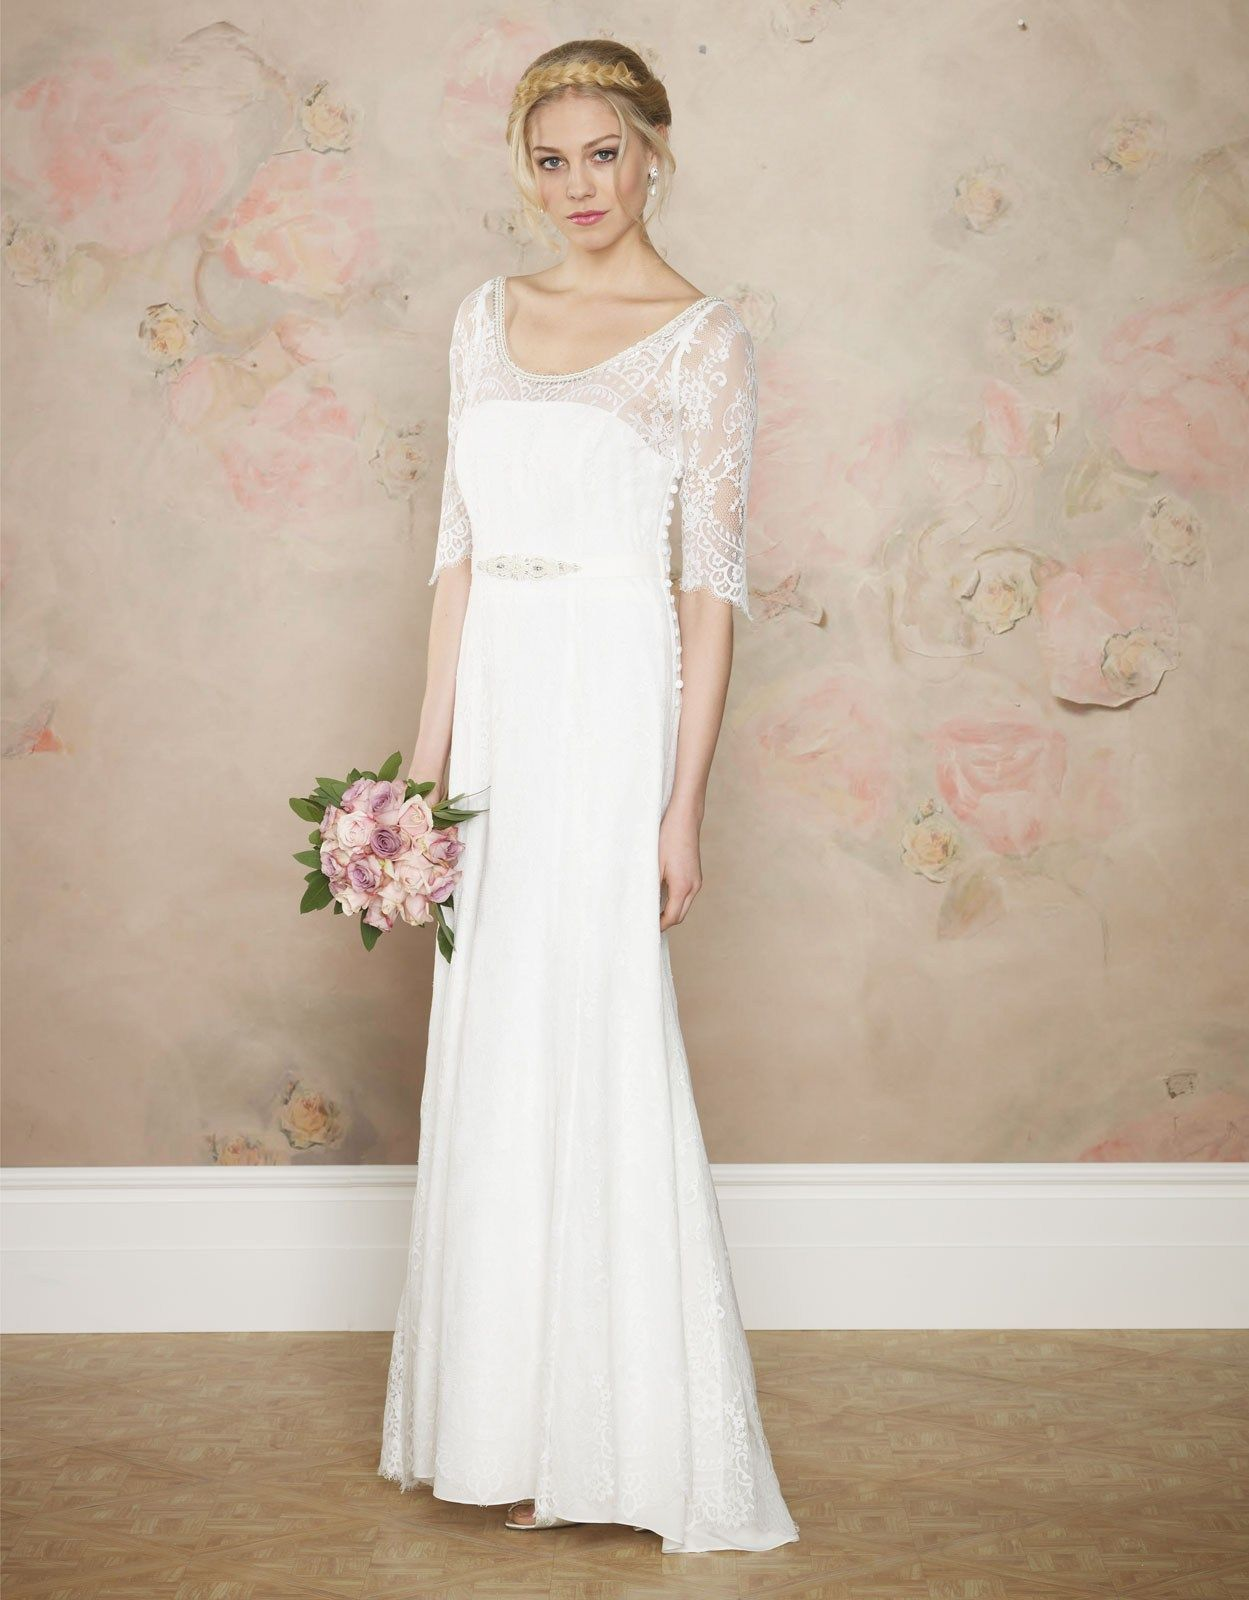 54 Lovely Casual Wedding Dresses for Second Marriages Pics